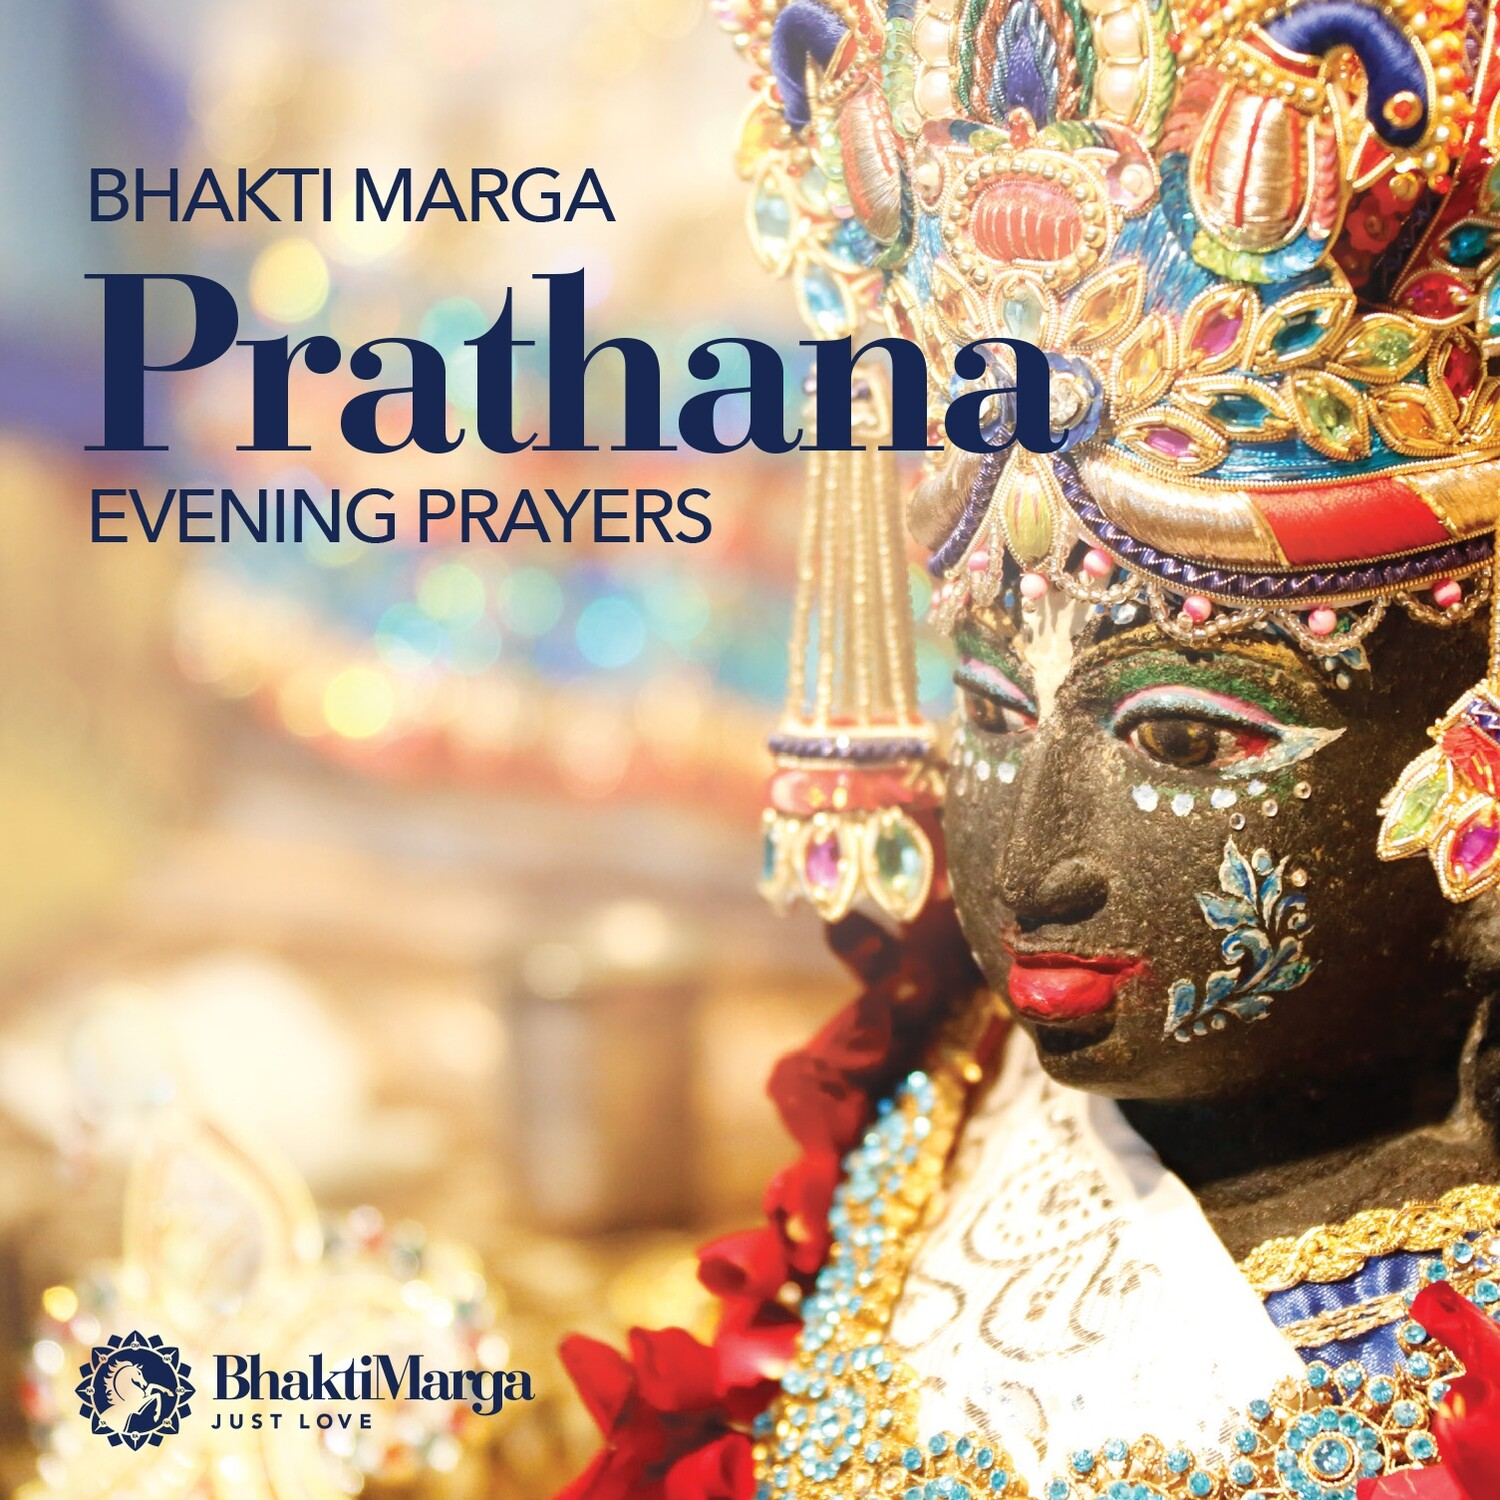 Prathana Evening Prayers By Bhakti Marga